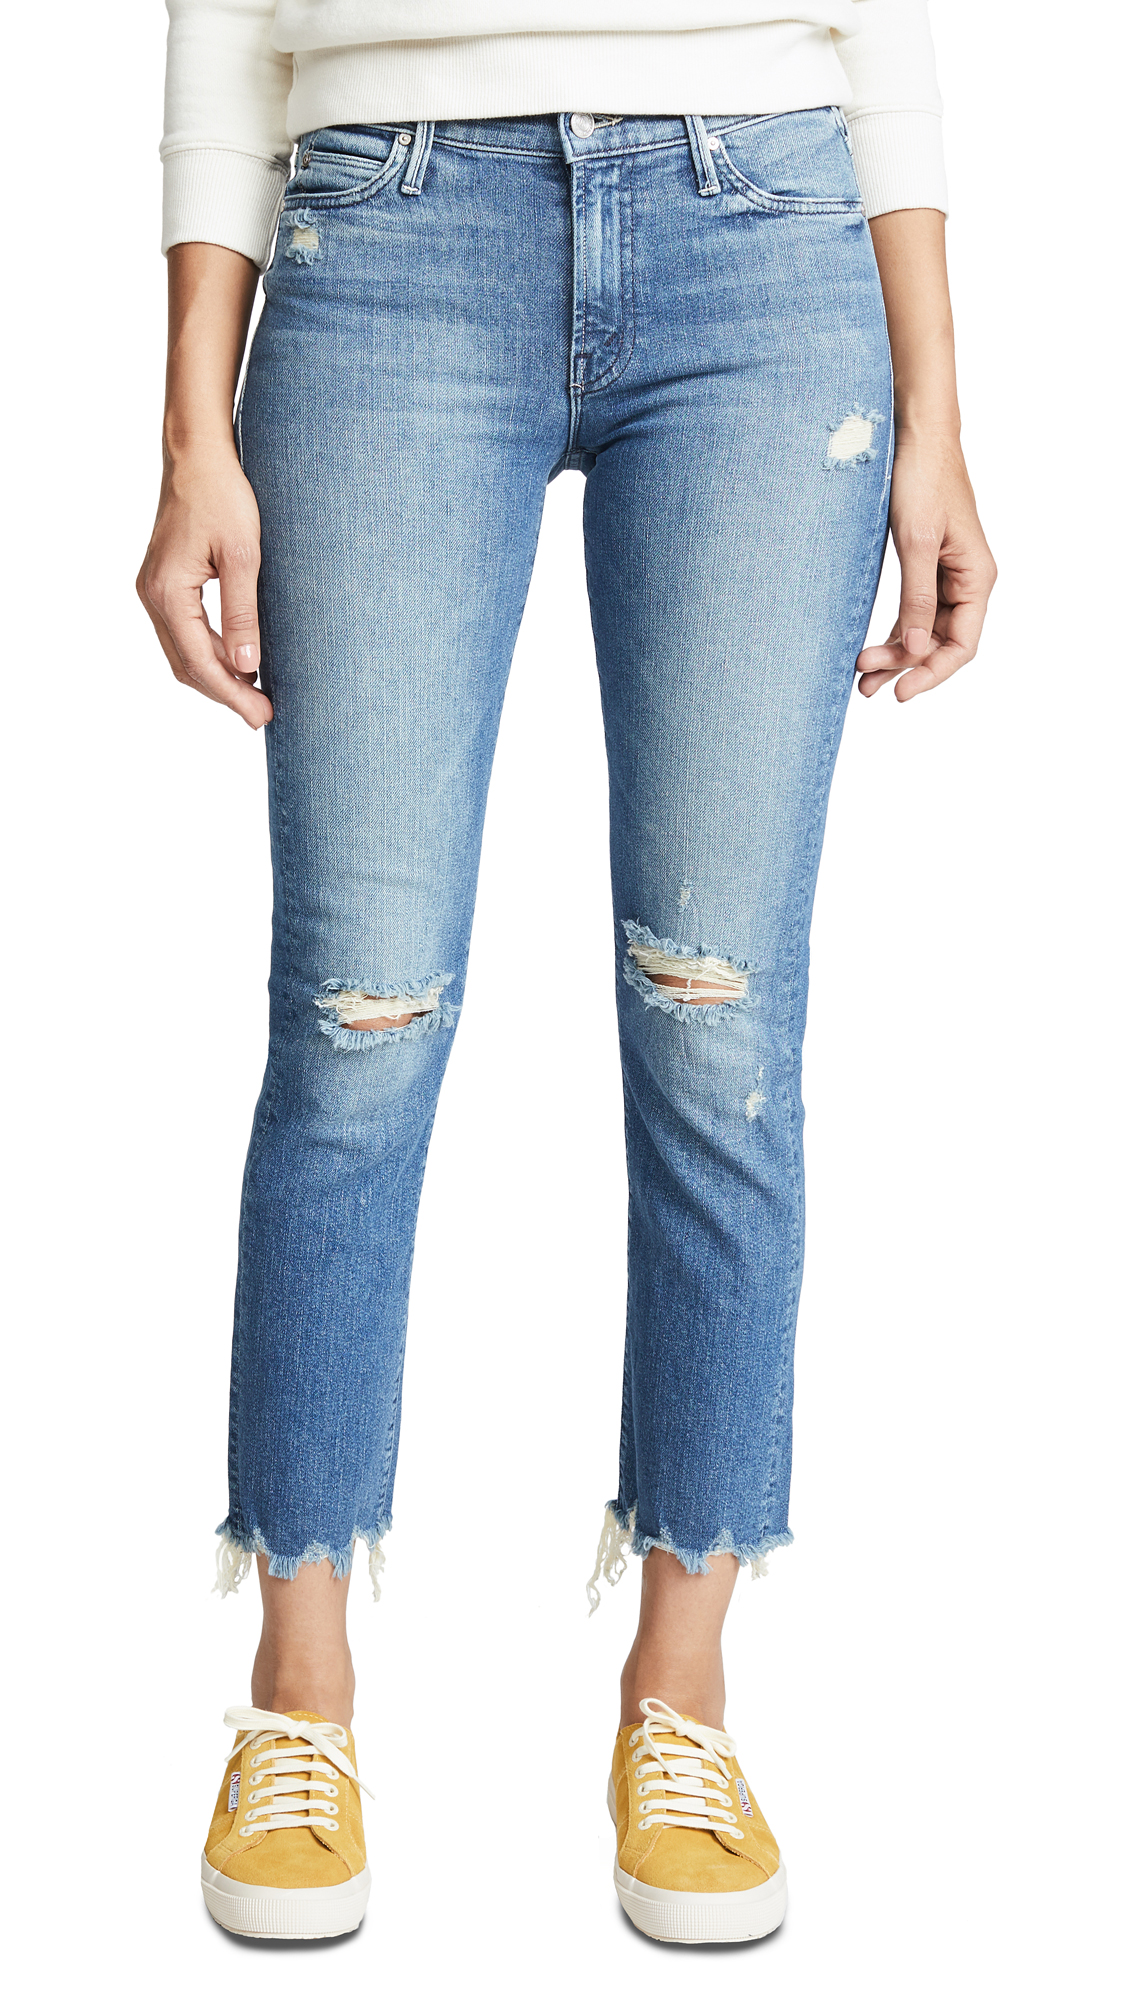 THE RASCAL ANKLE CHEW JEANS